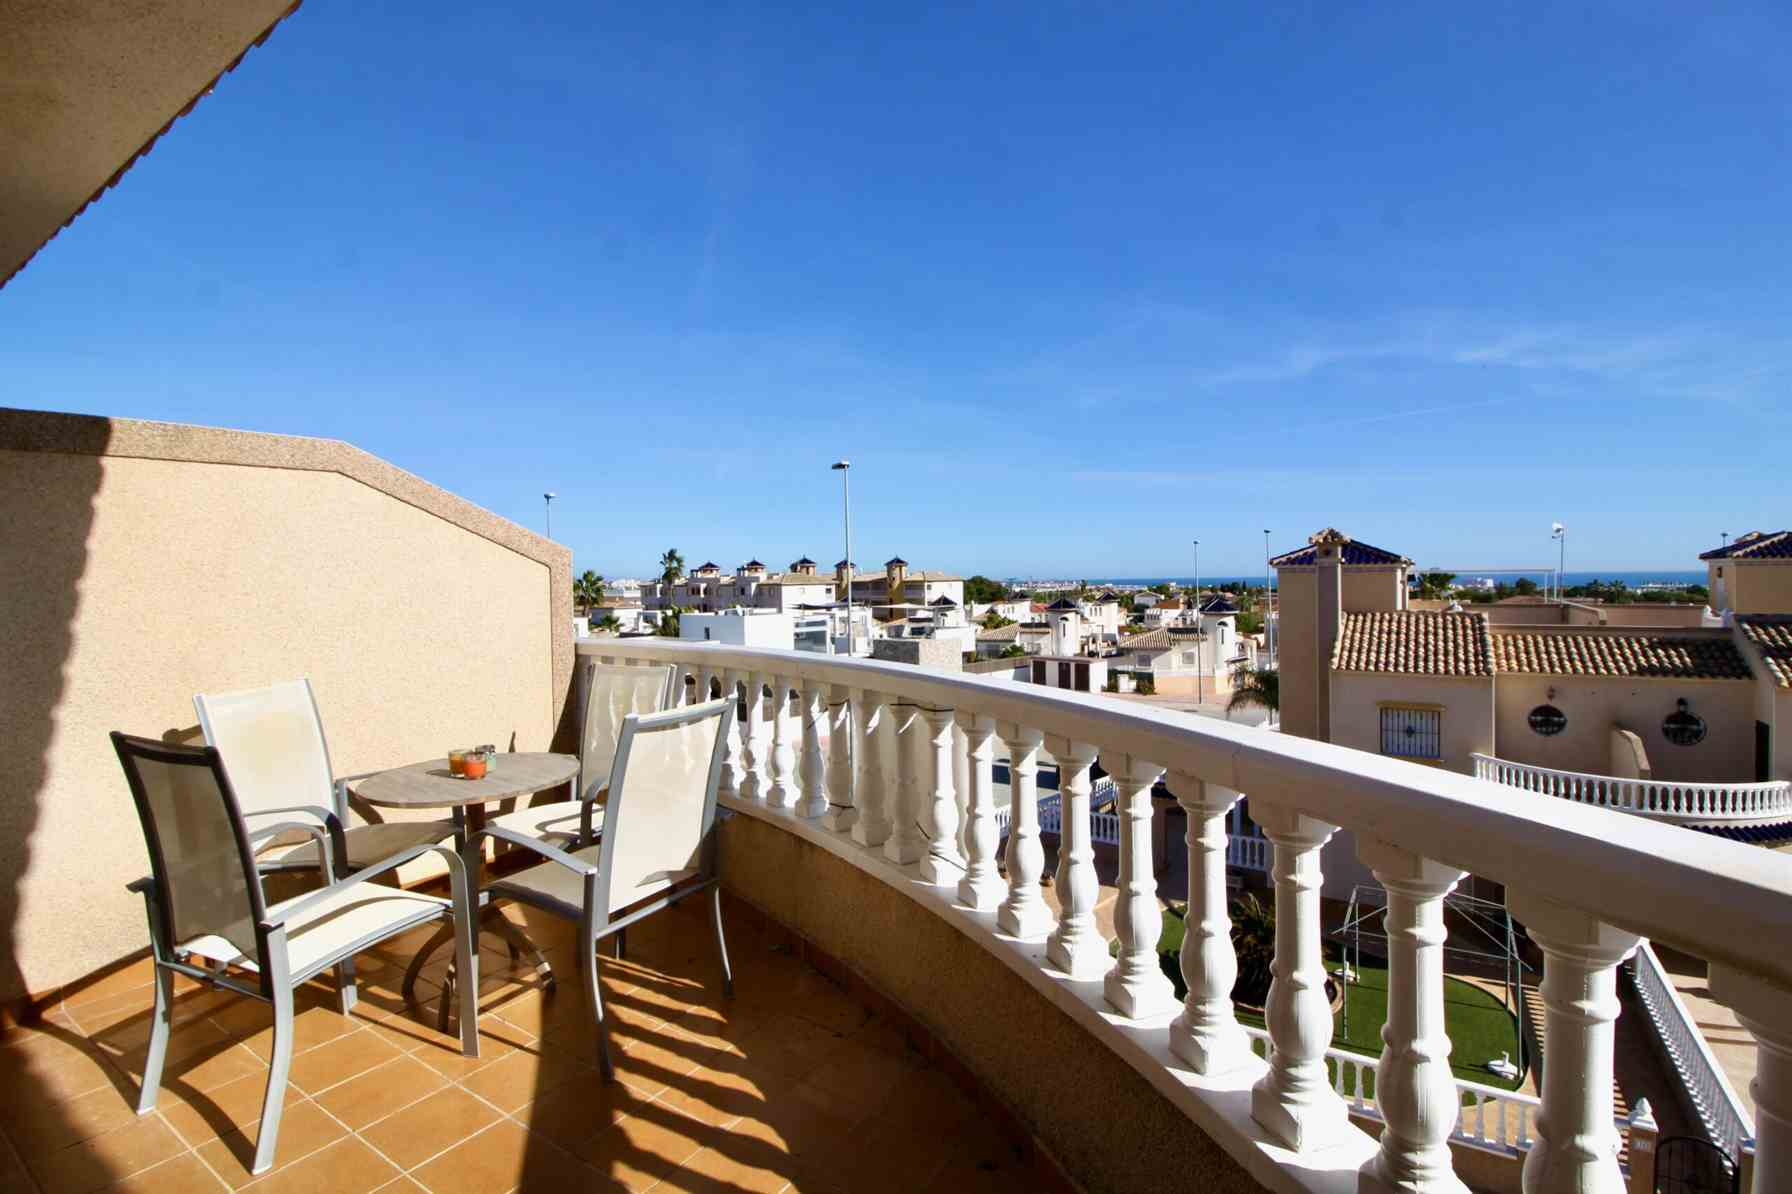 2 bedroom apartment / flat for sale in Cabo Roig, Costa Blanca